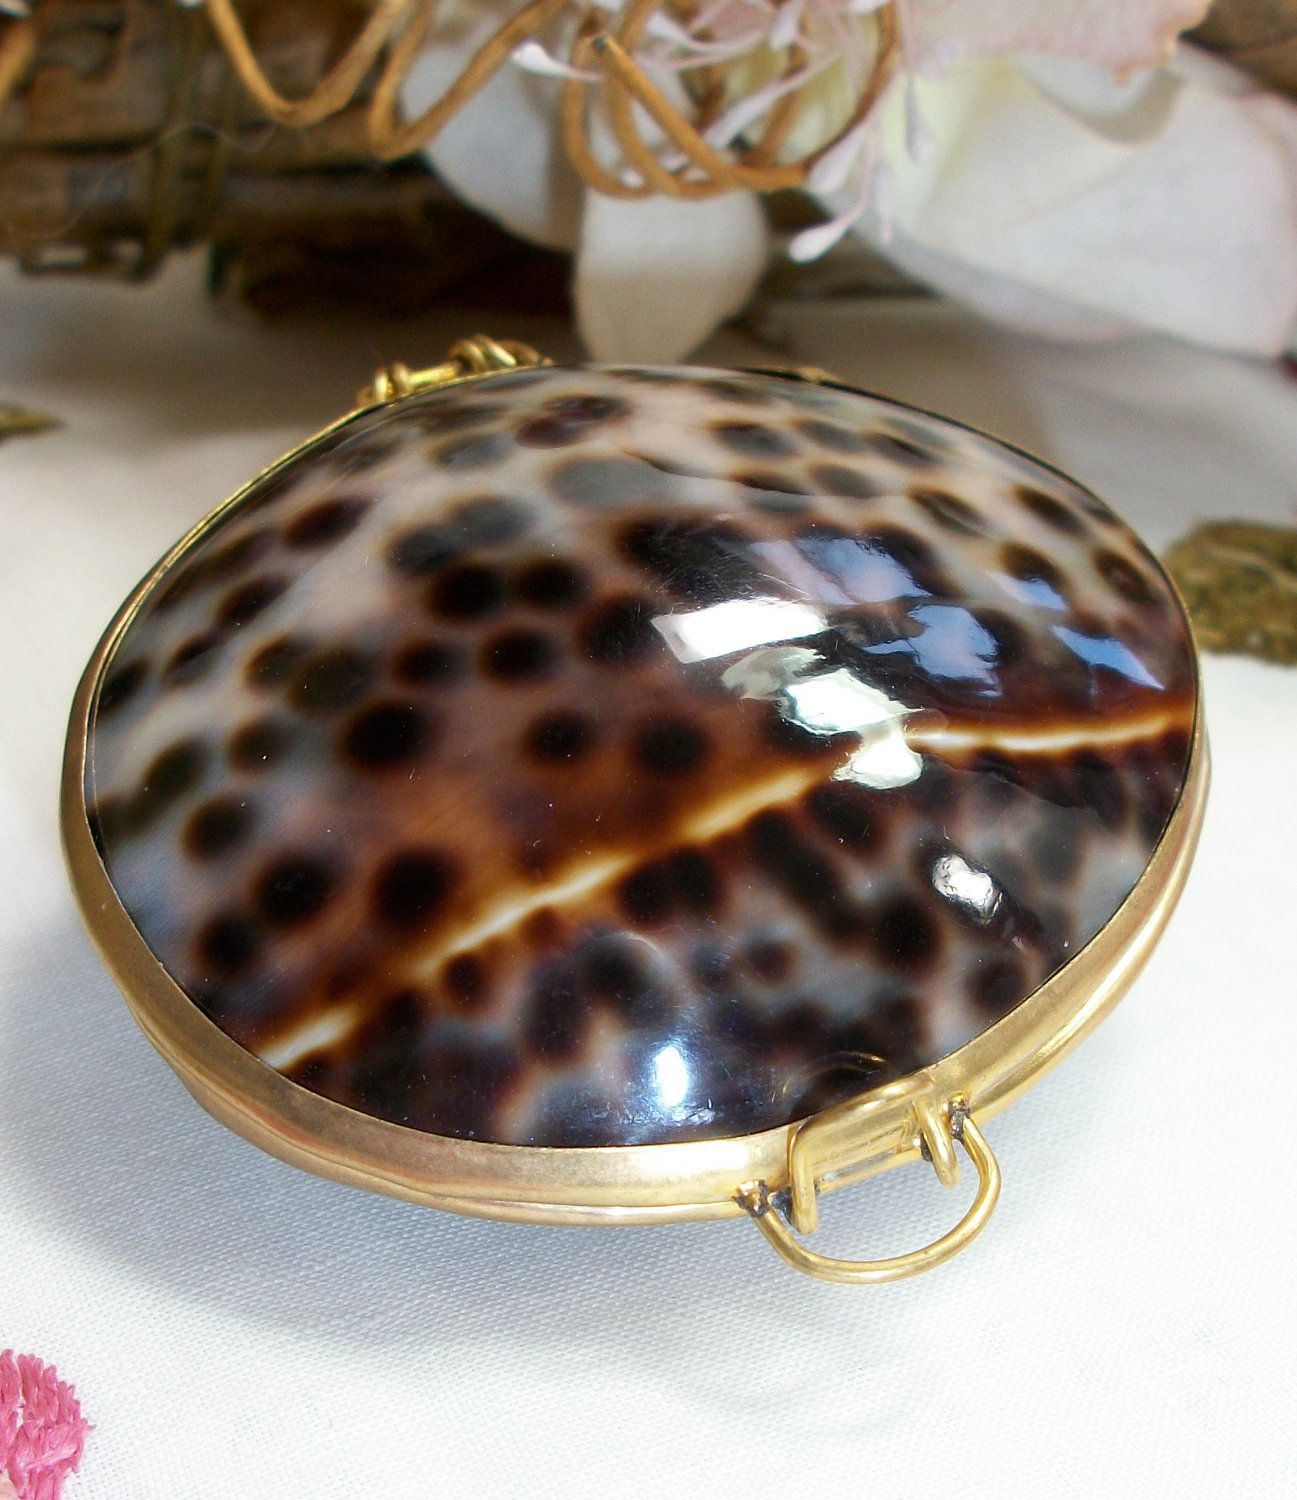 I have one of these Pillboxes and it's on my short list of fave trinkets.